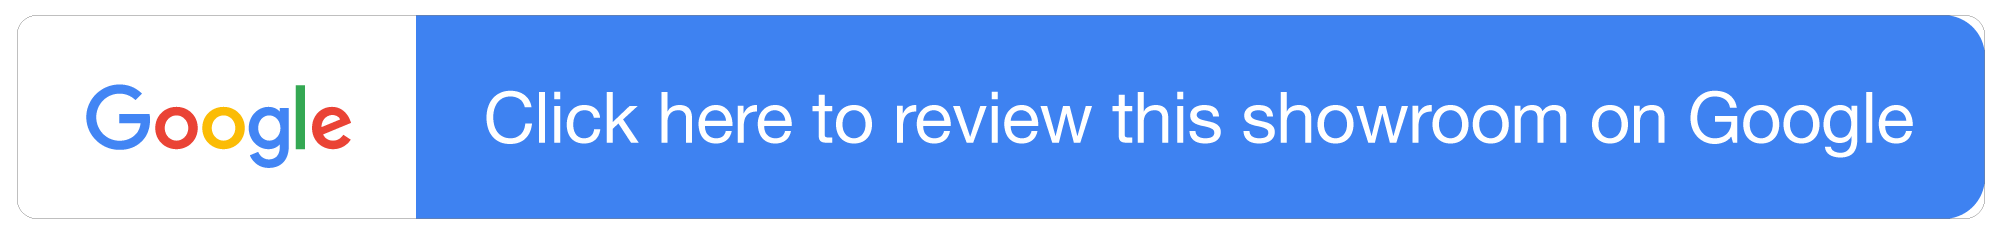 Review this showroom on Google